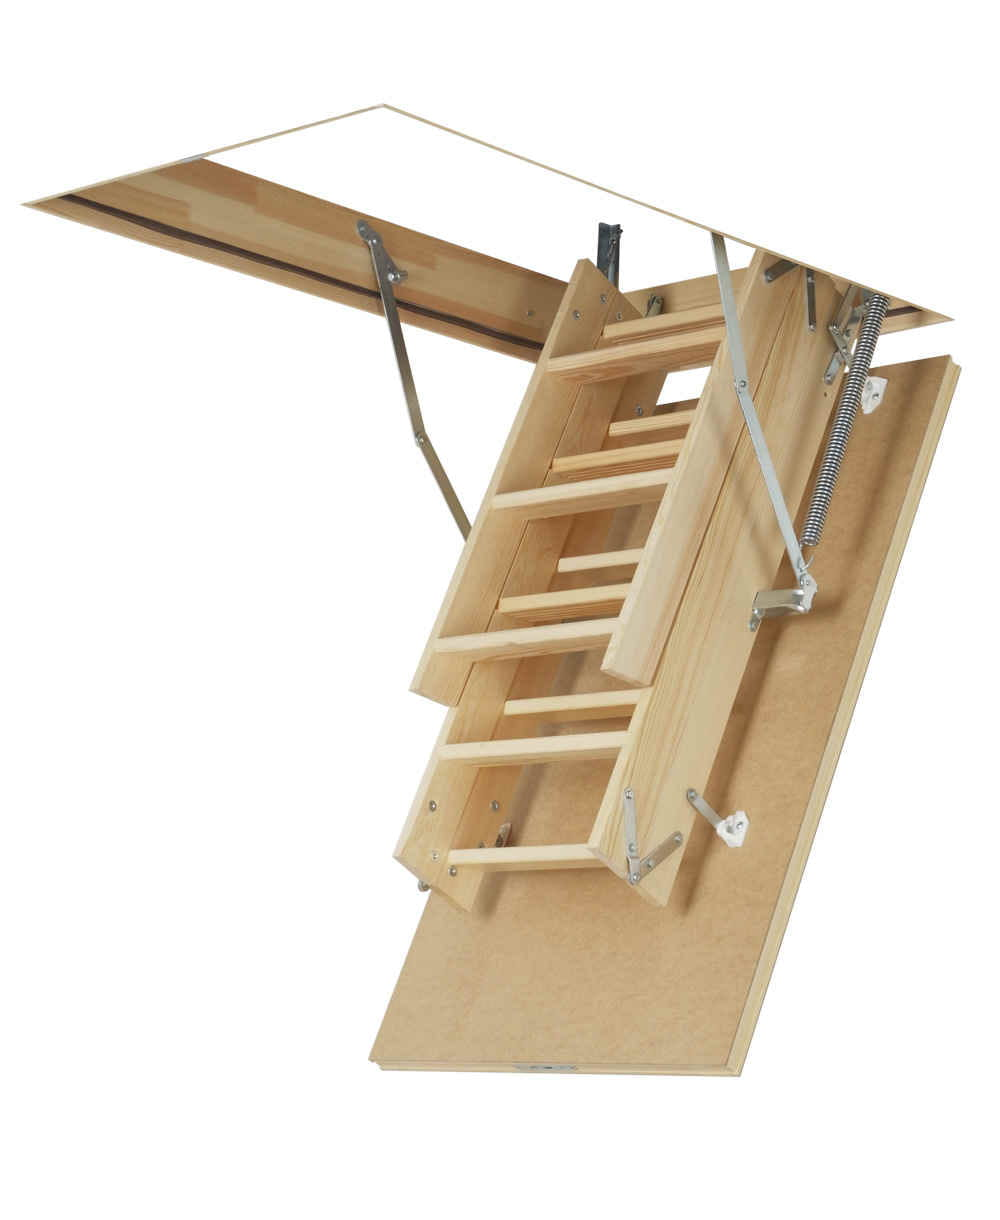 patta Space Saving Stairs also Choosing The Right Electric Loft Ladders moreover How Insulate Attic Drop Down Access Stairs moreover How To Build A Backyard Playhouse furthermore Get The Best From Attic Ladders Melbourne. on wooden loft ladder and hatch